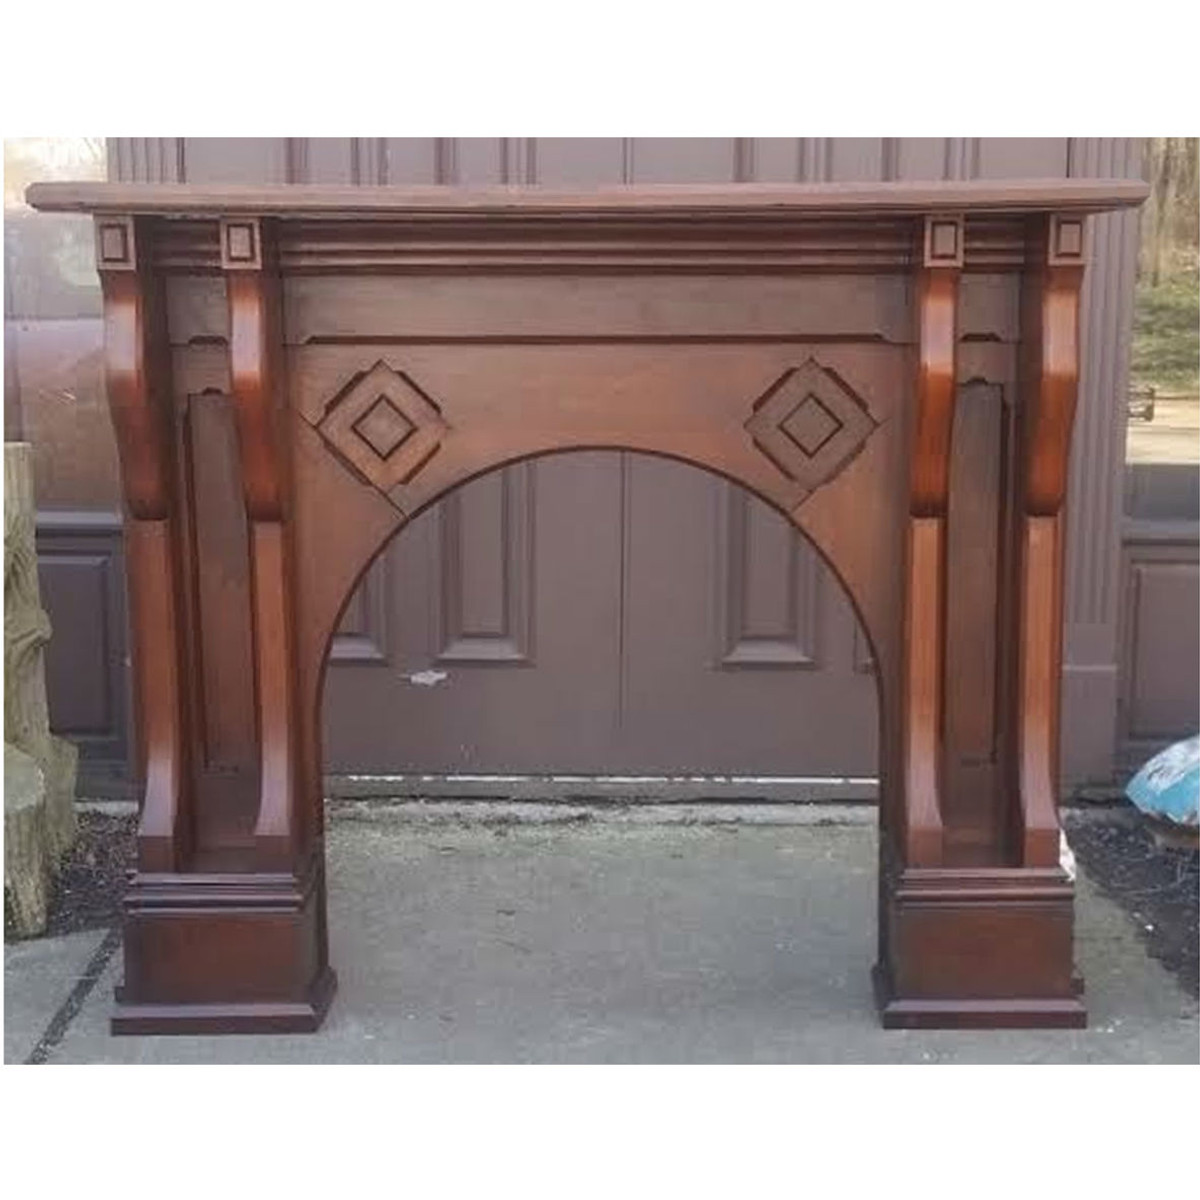 M17004 - Antique Walnut Renaissance Revival Half Mantel